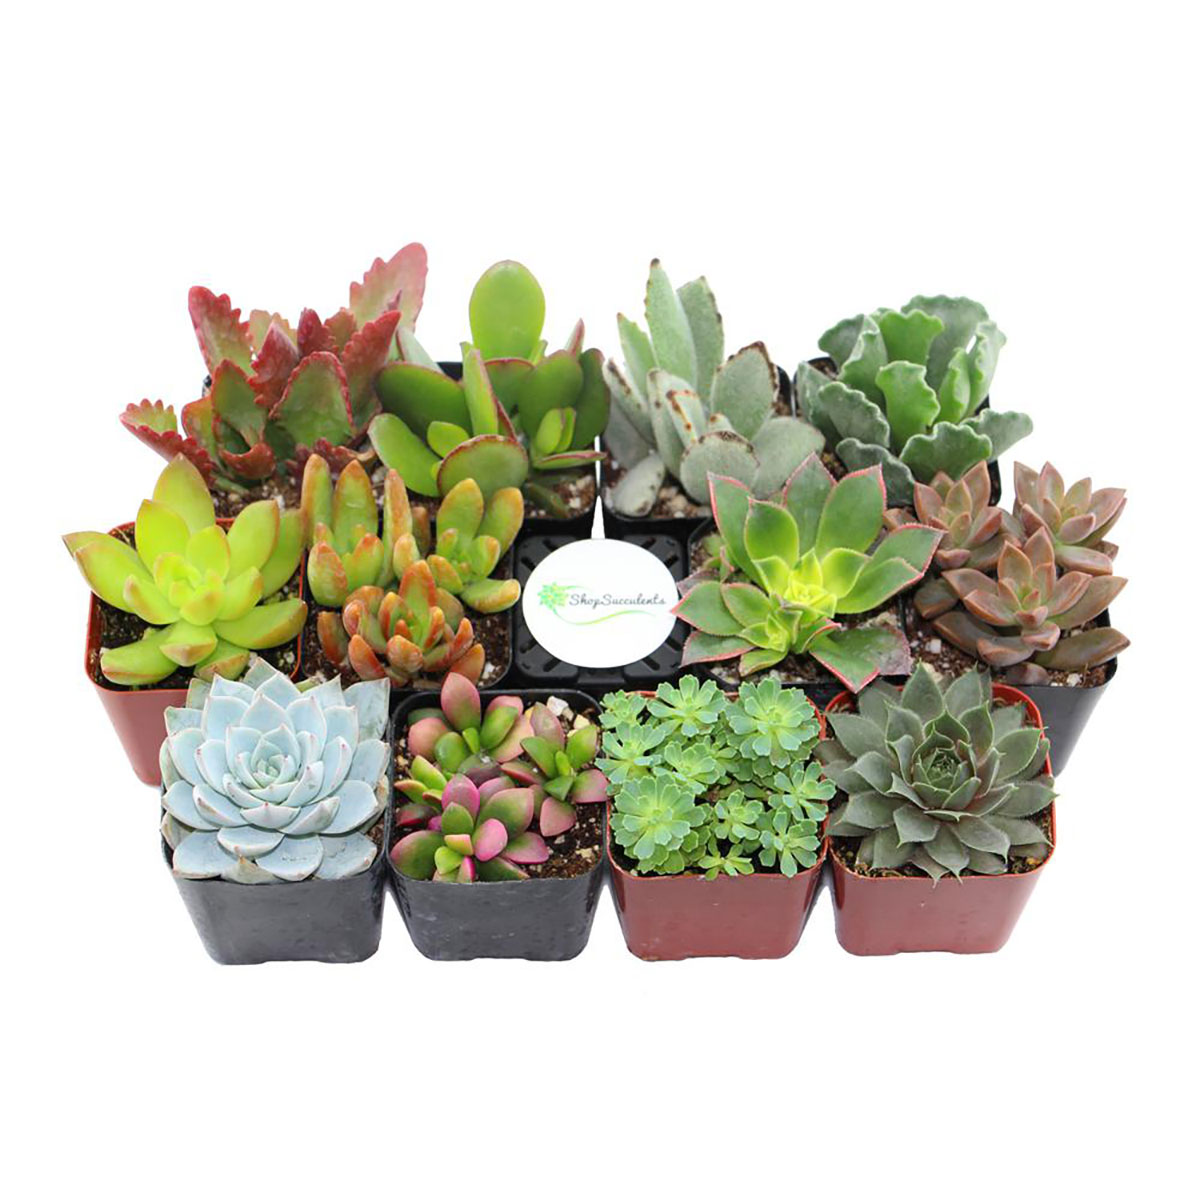 Cool gifts really cool gifts under 50 for everyone on your list - Cool succulent plants ...